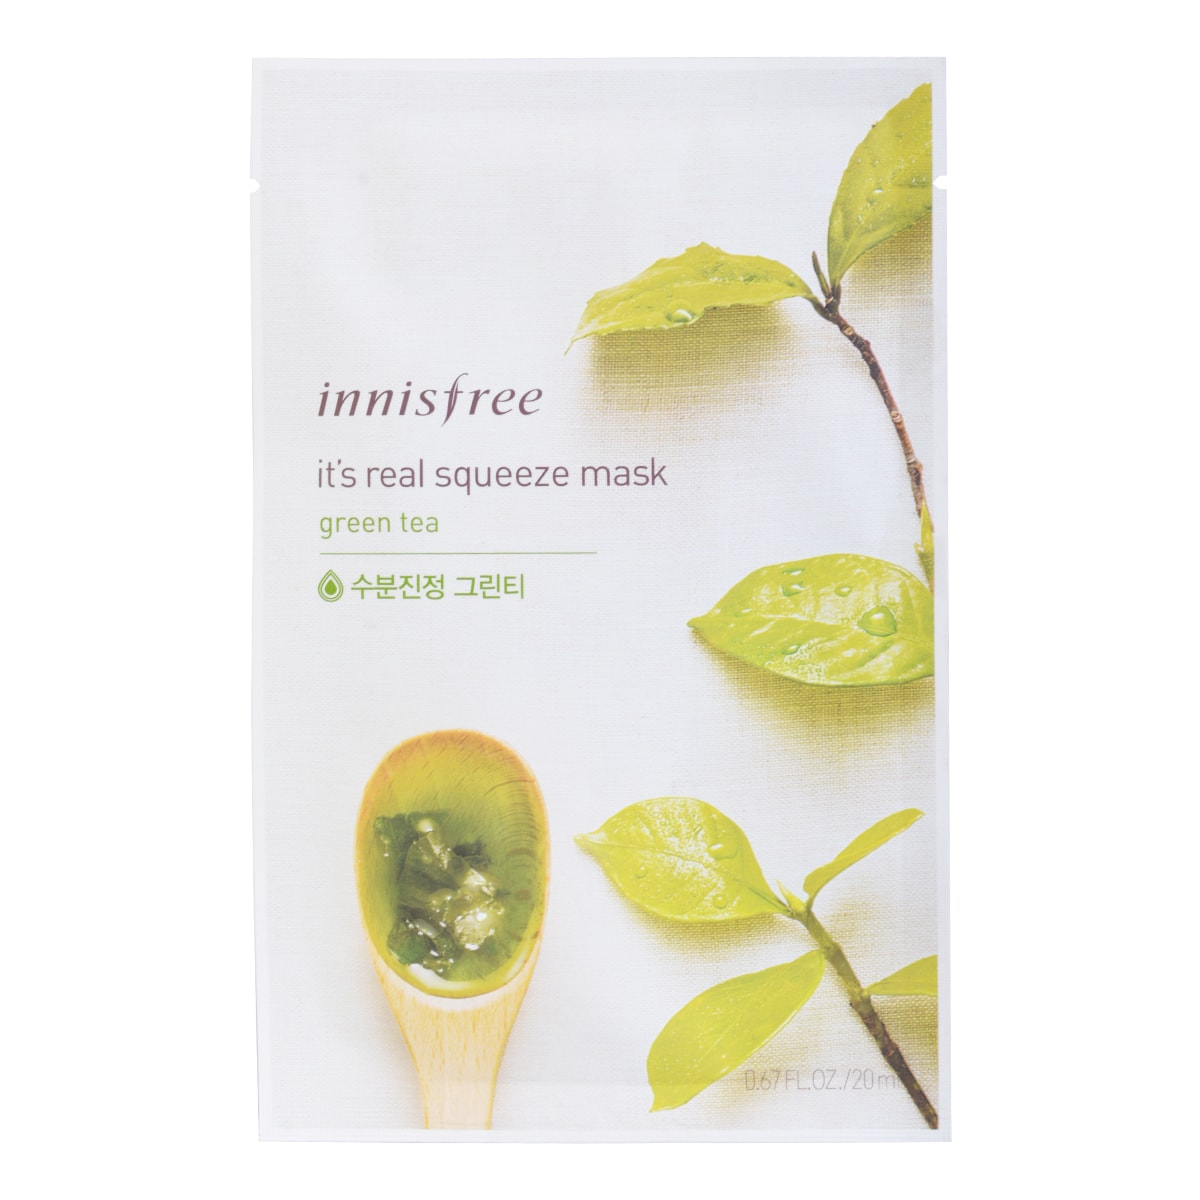 Innisfree Its Real Squeeze Mask Green Tea 1sheet Lime